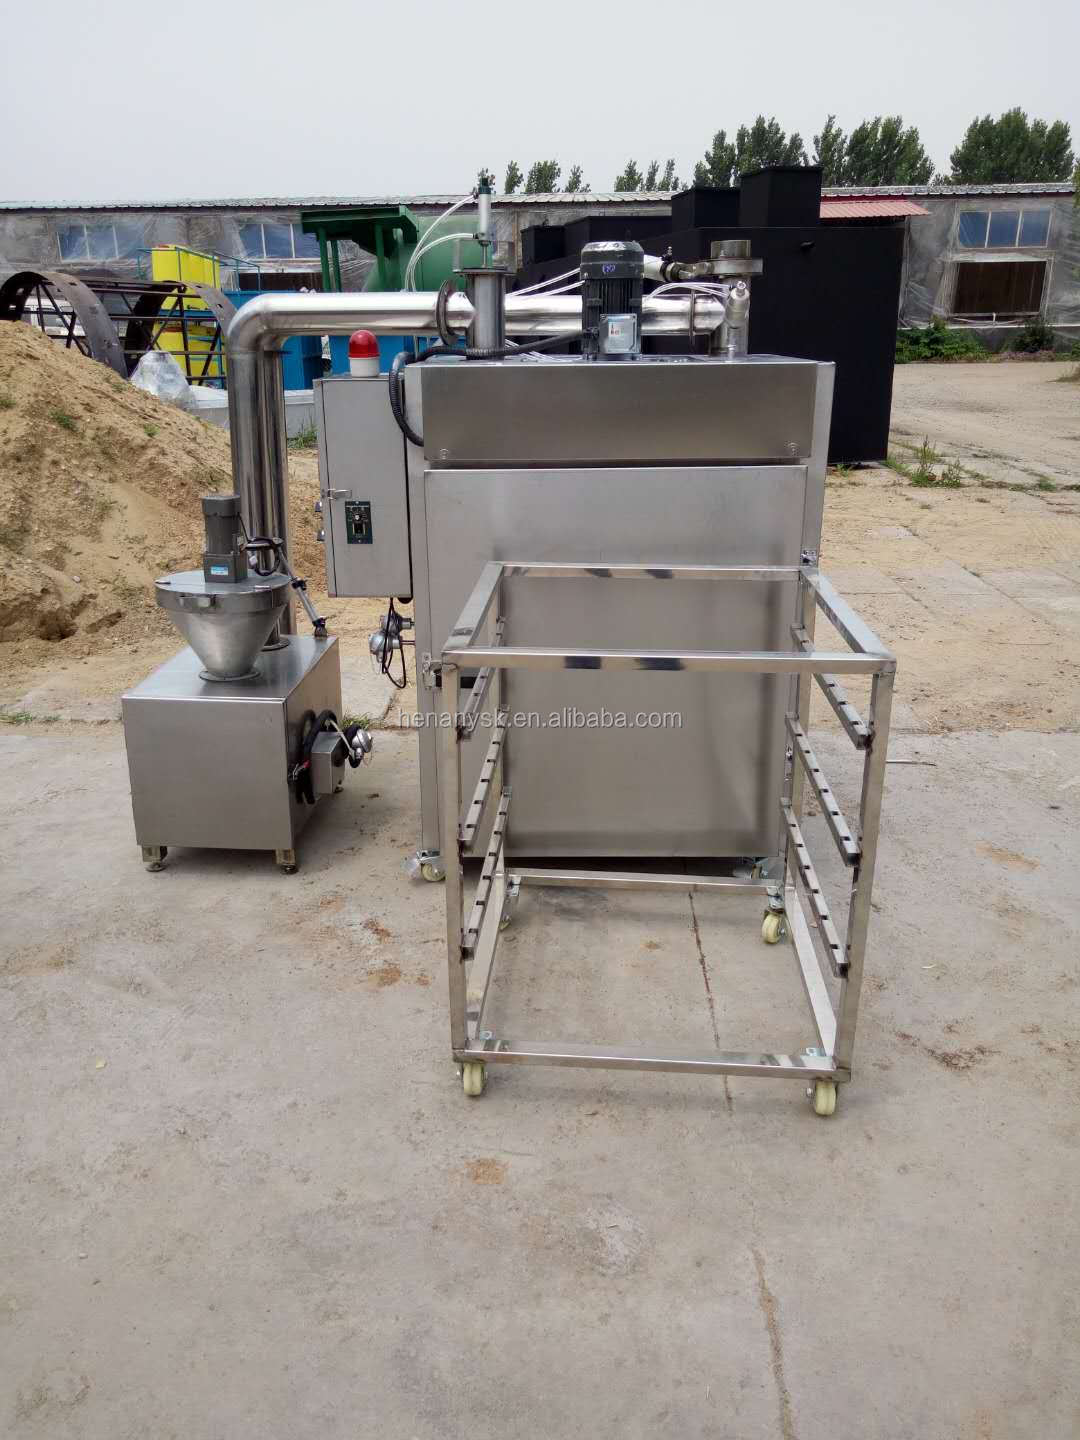 2018 New Sausage Processing Meat Steaming Drying Smoking Smoker Oven House for Meat Products